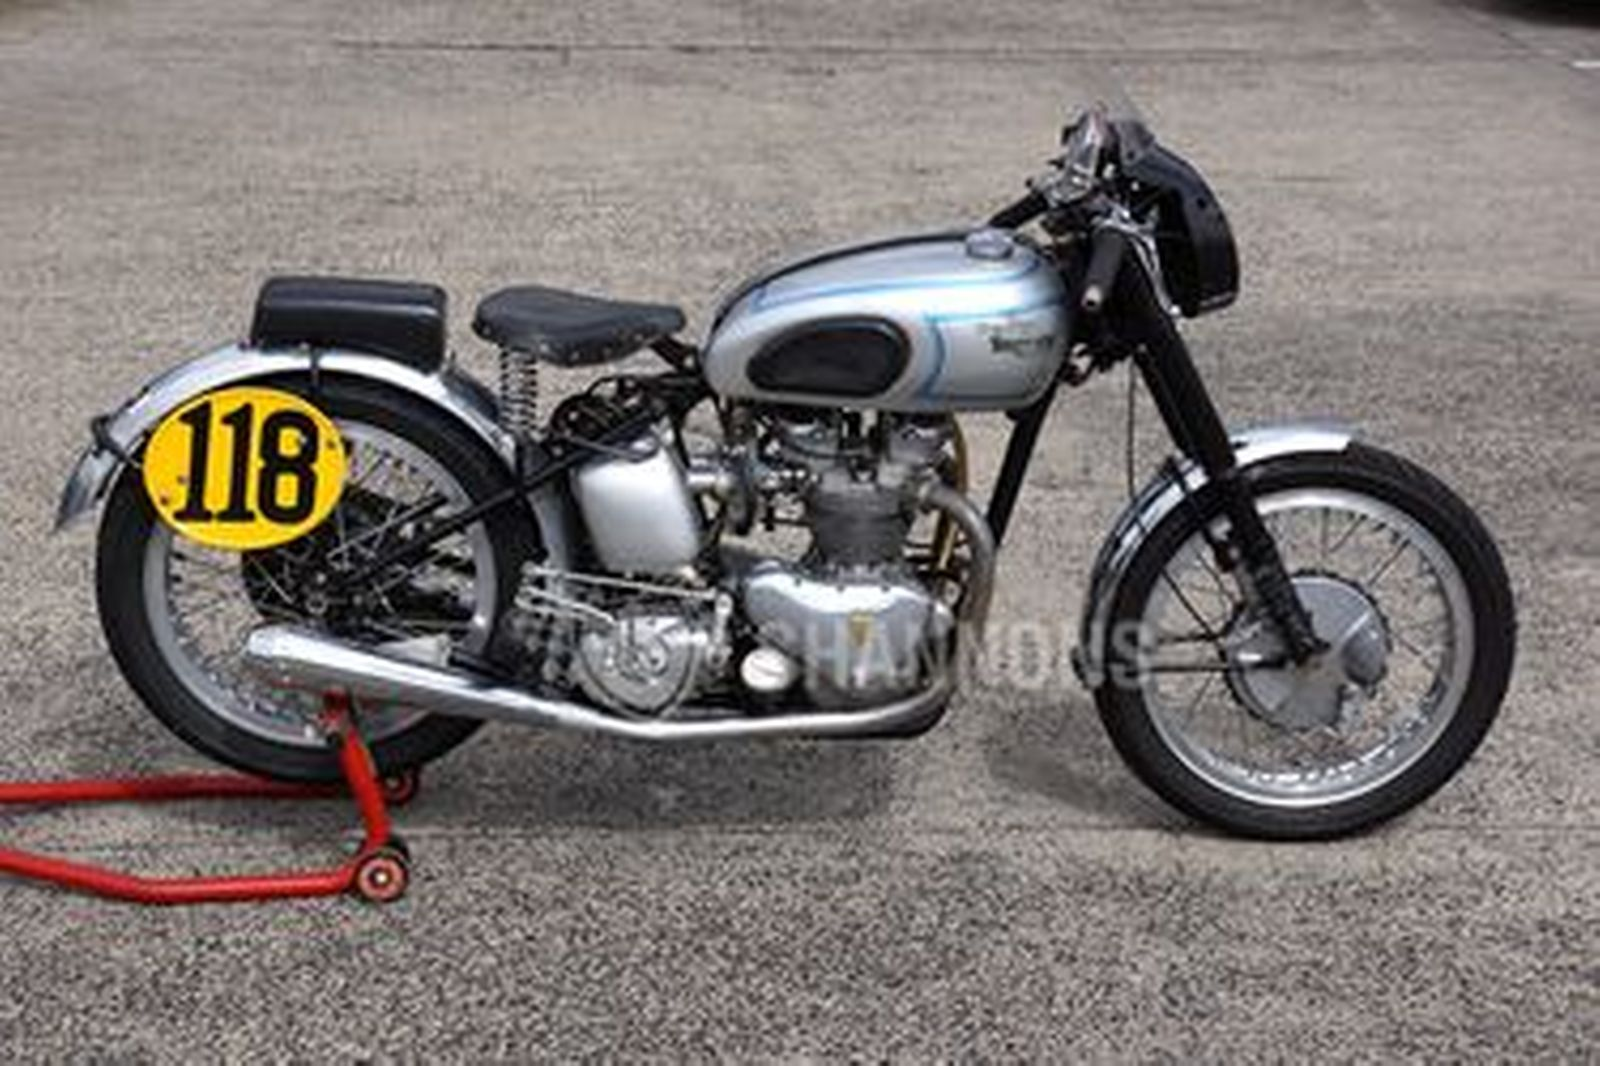 Triumph T100 Tiger Racing Motorcycle